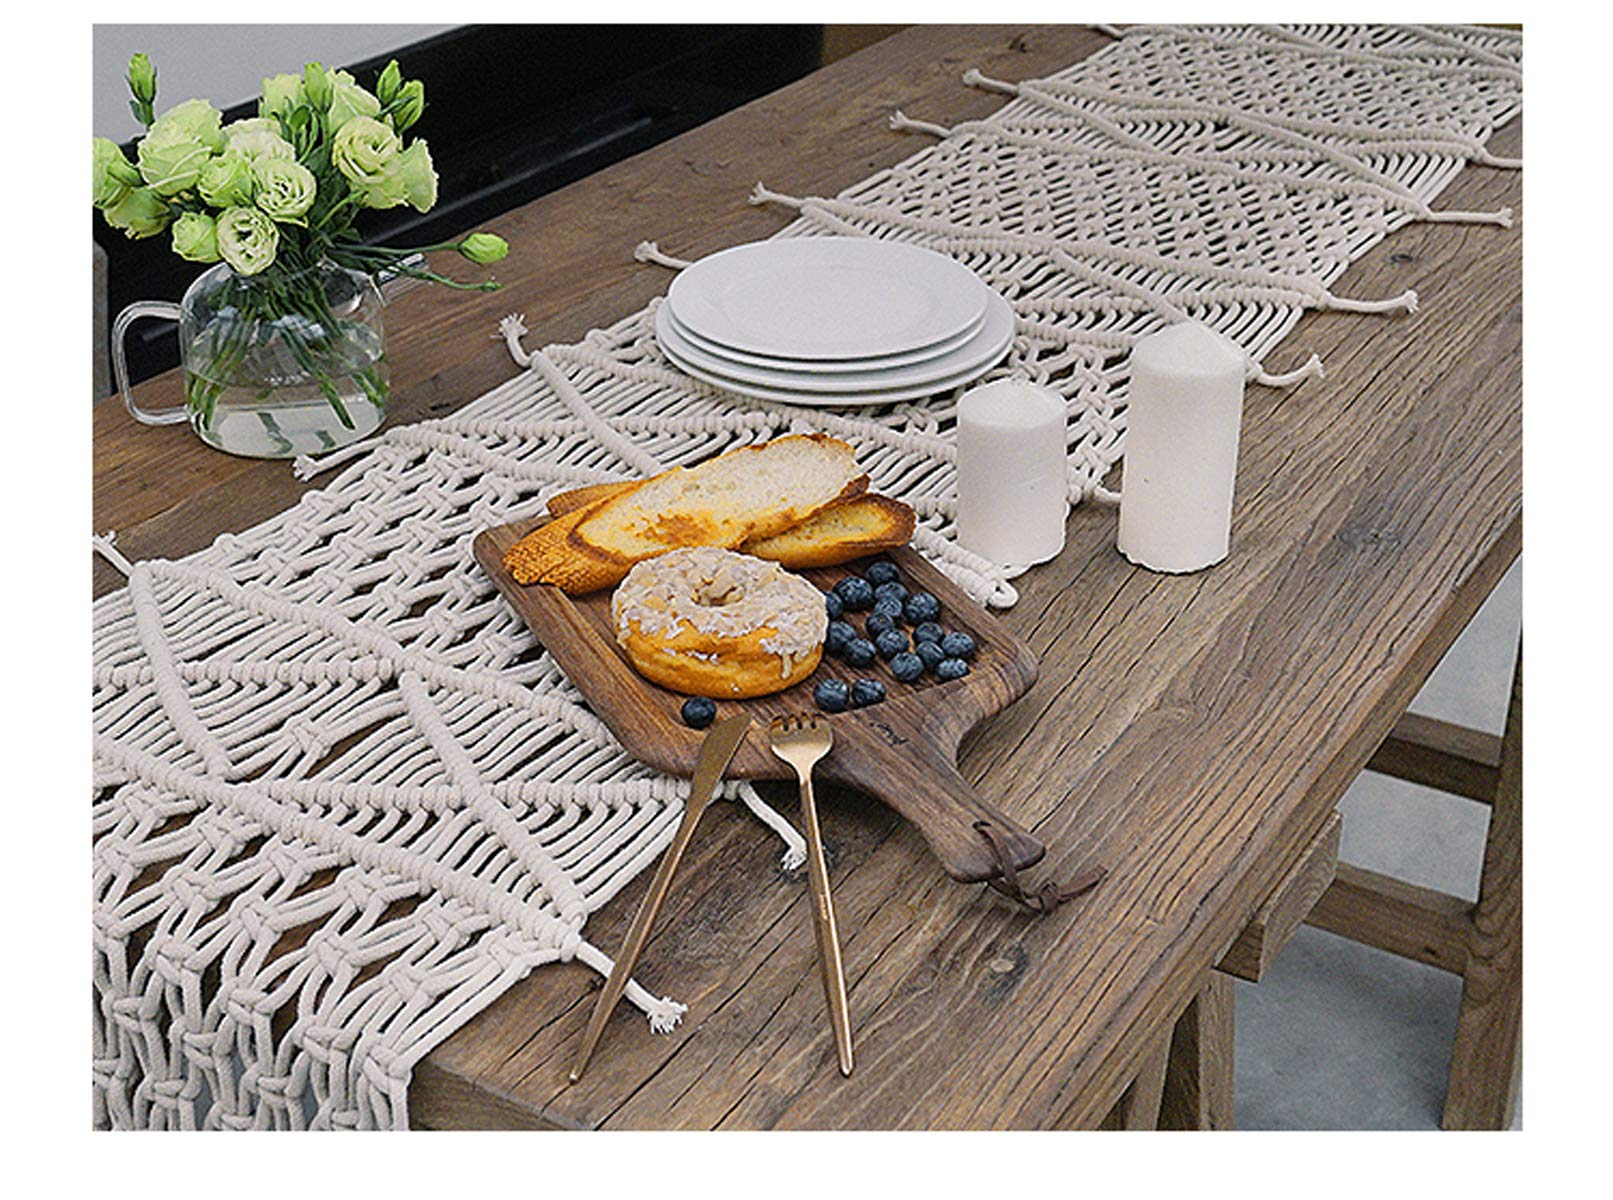 RISEON Bohemia Handmade Natural Macrame Table Runner, macrame table placement, Macrame table Centerpiece, Bed Runner Wedding Home Boho Decor (13.7''W x 59''L)